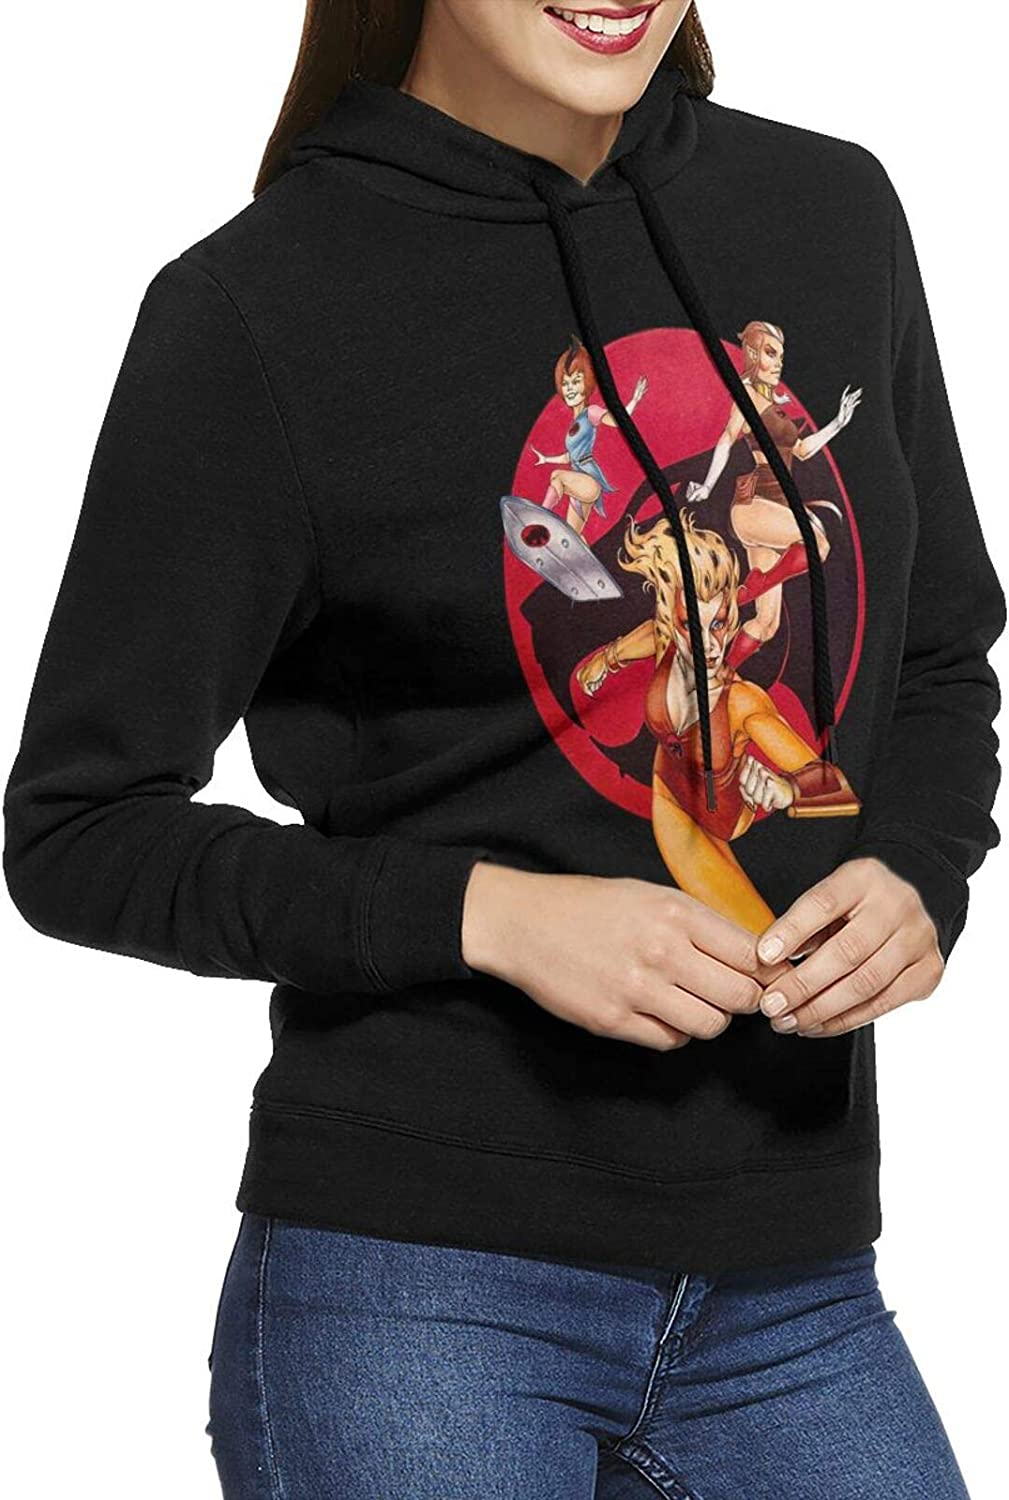 Thundercats Cheetara Hoodie Female Sweatshirts 2021 new Our shop OFFers the best service Cotton Lon Casual